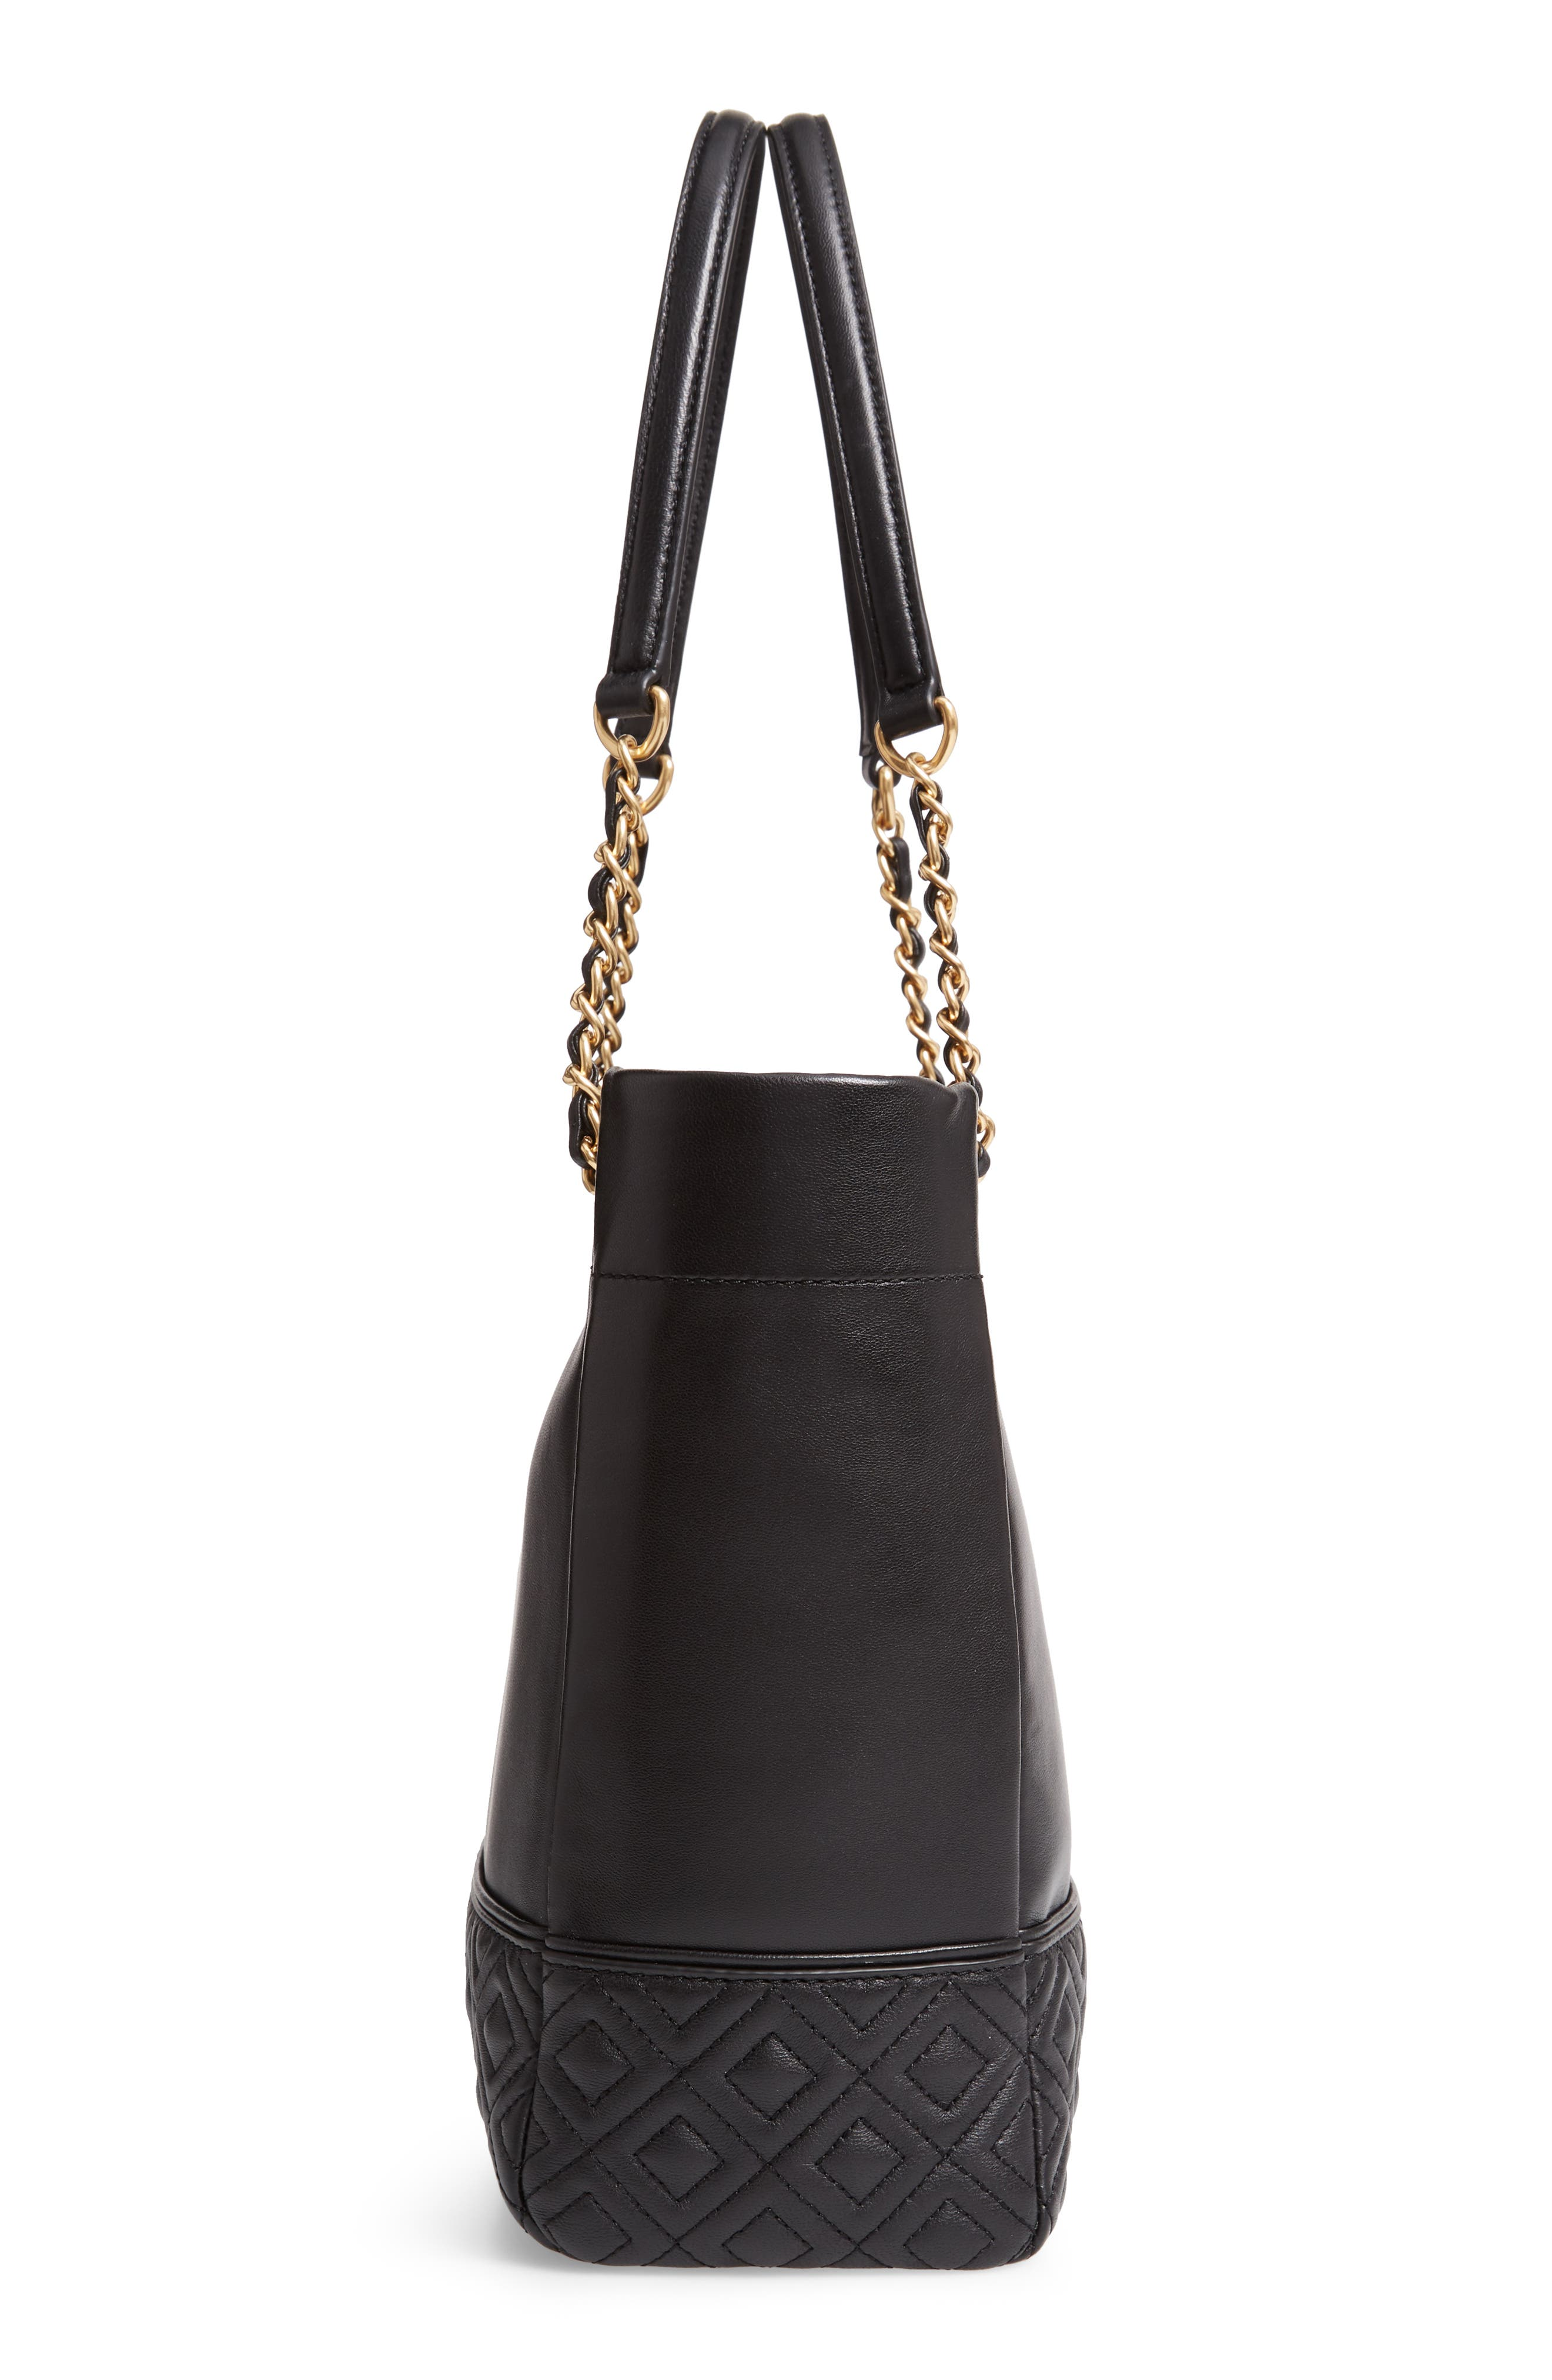 TORY BURCH, Fleming Leather Tote, Alternate thumbnail 6, color, BLACK